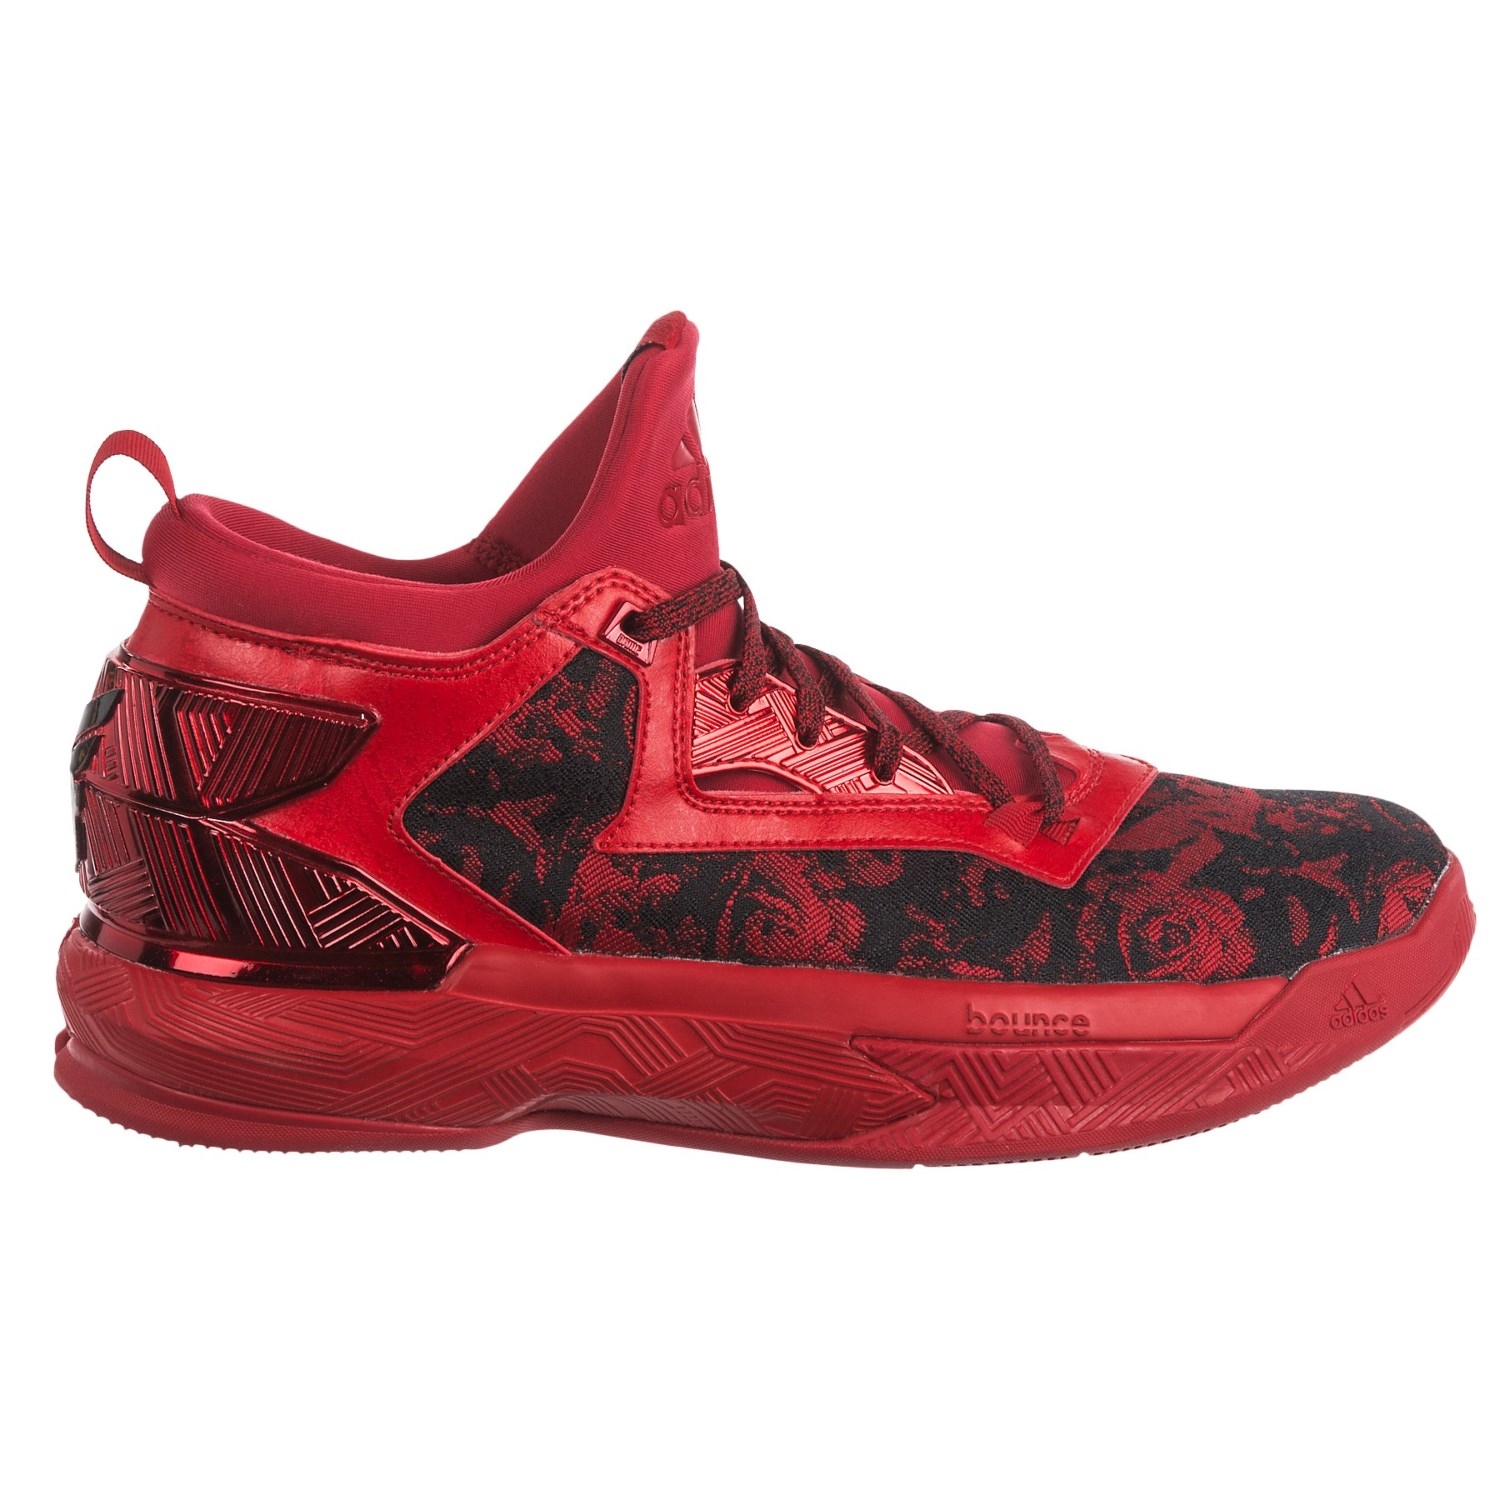 adidas Damian Lillard 2 Basketball Shoes (For Men) - Save 62%